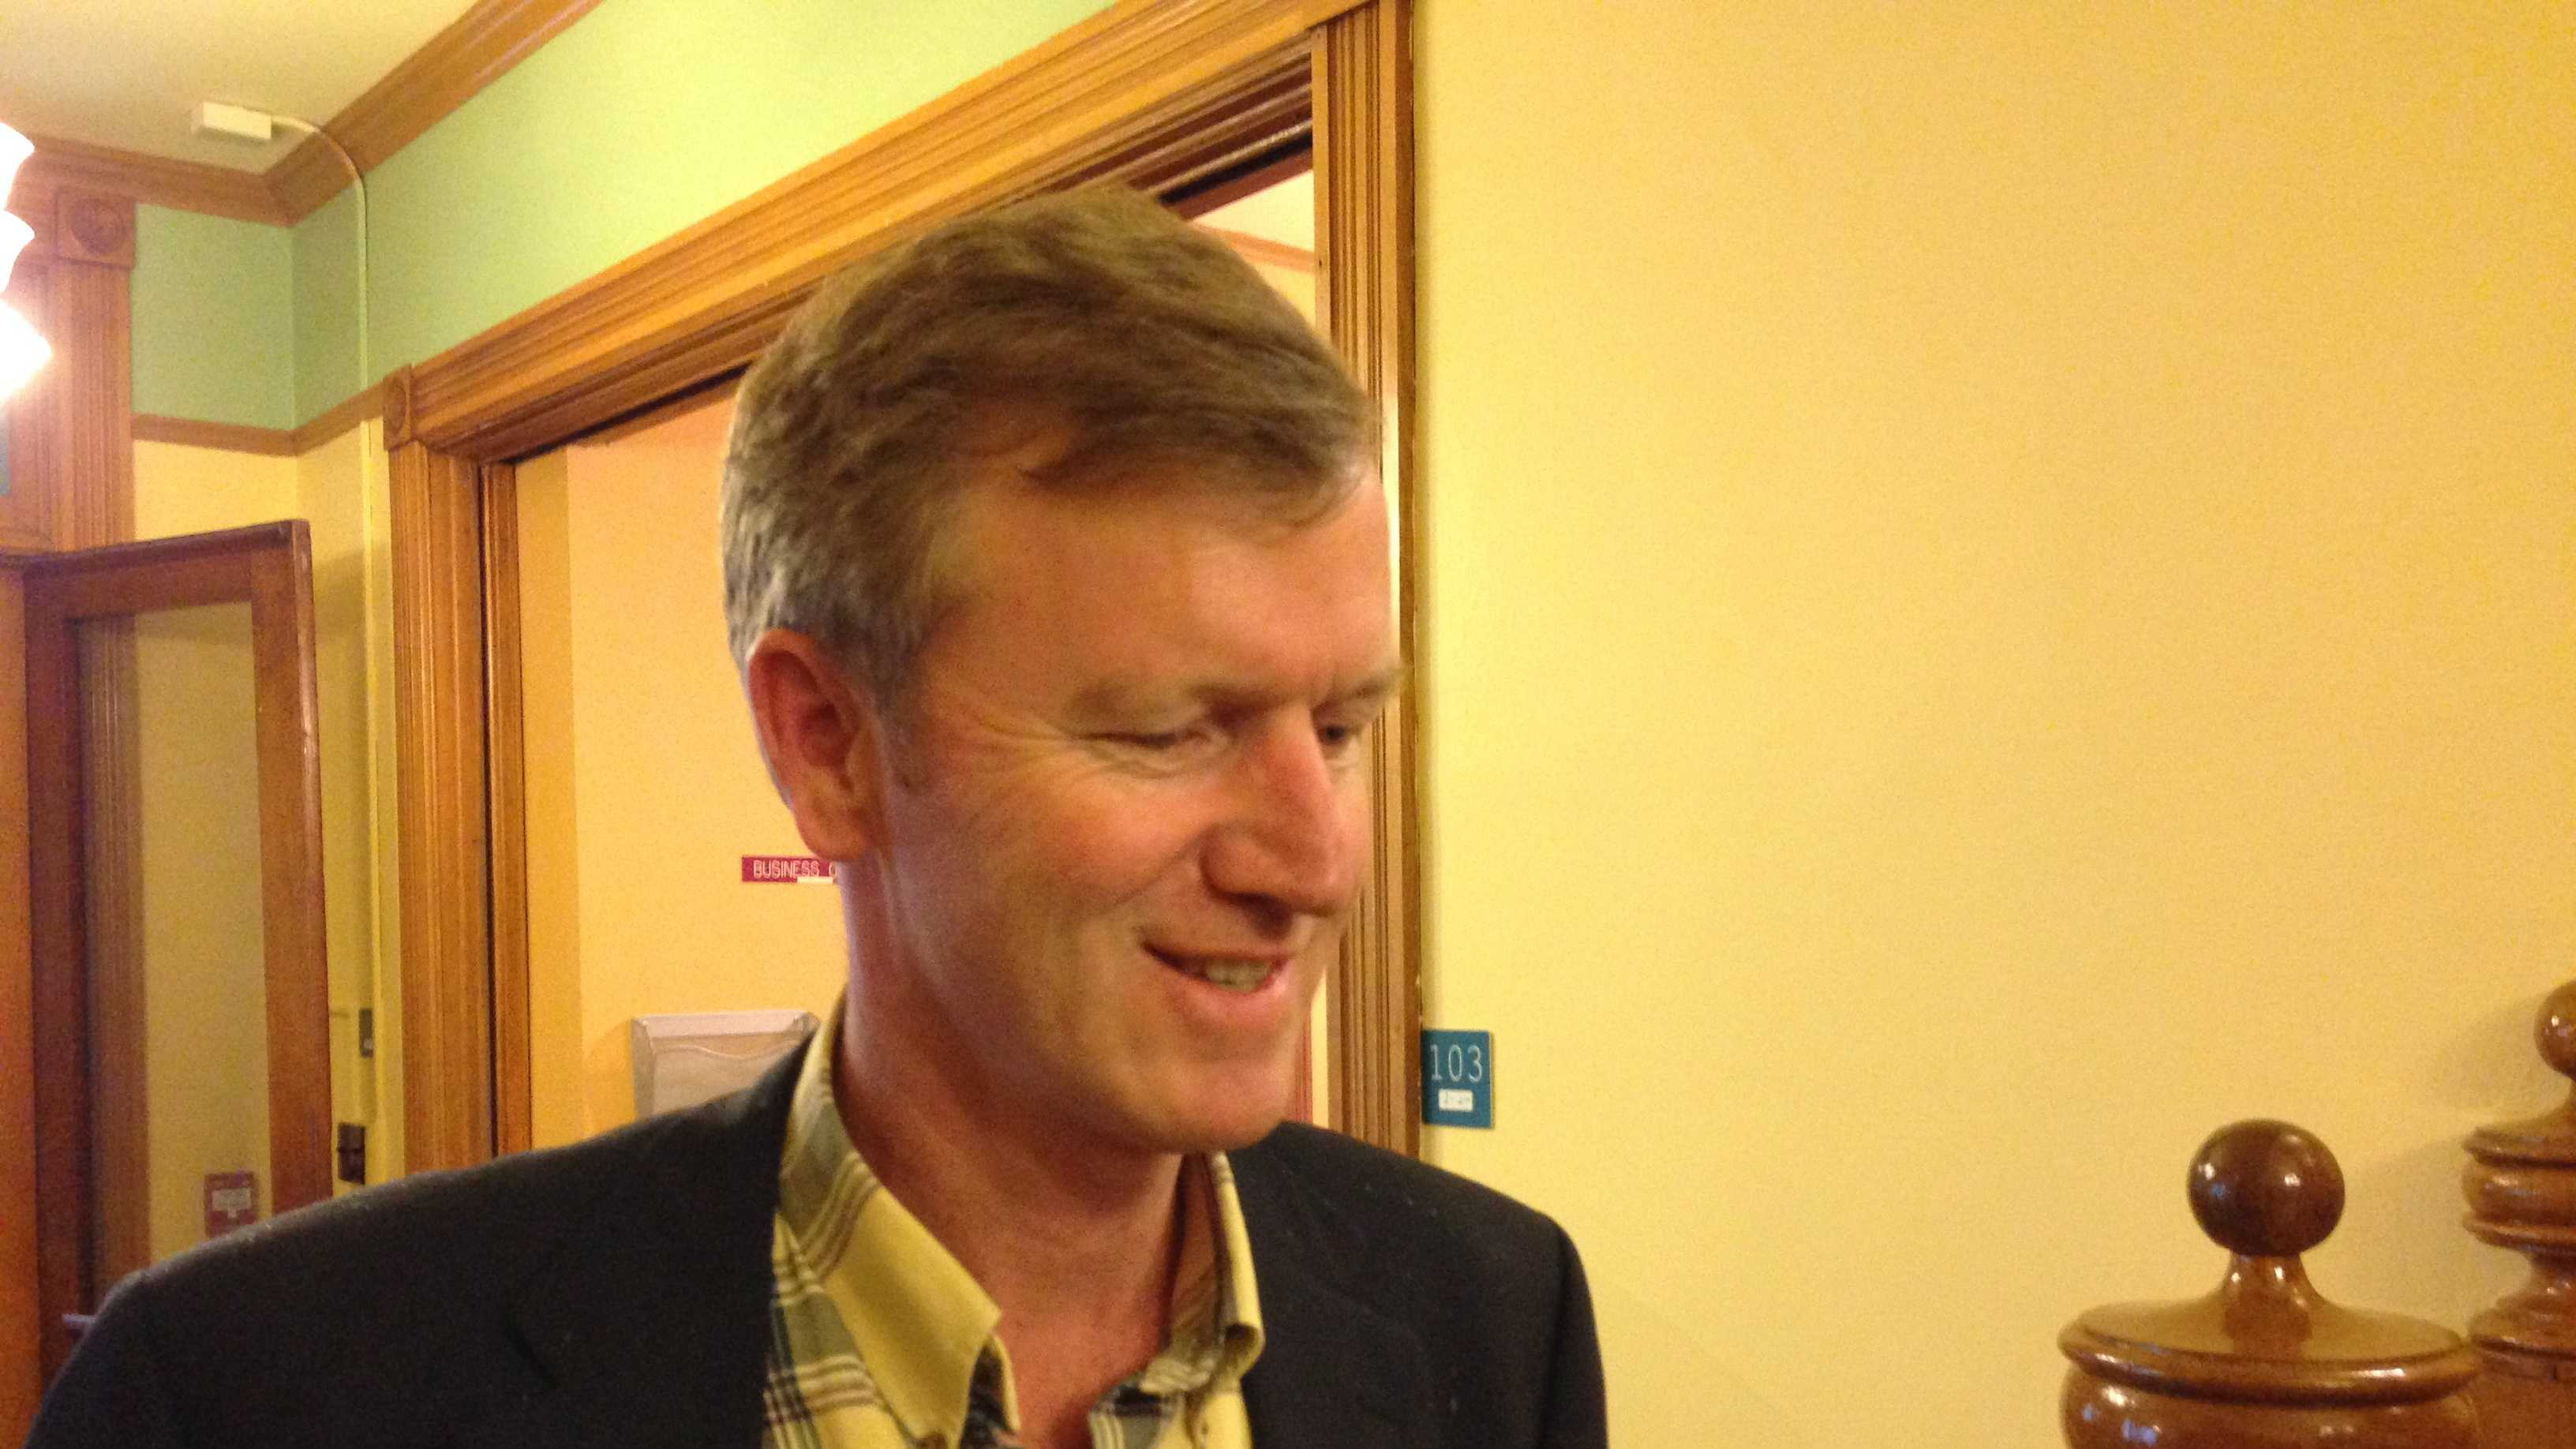 Scott Milne on June 12th when he officially filed the documents to run for governor